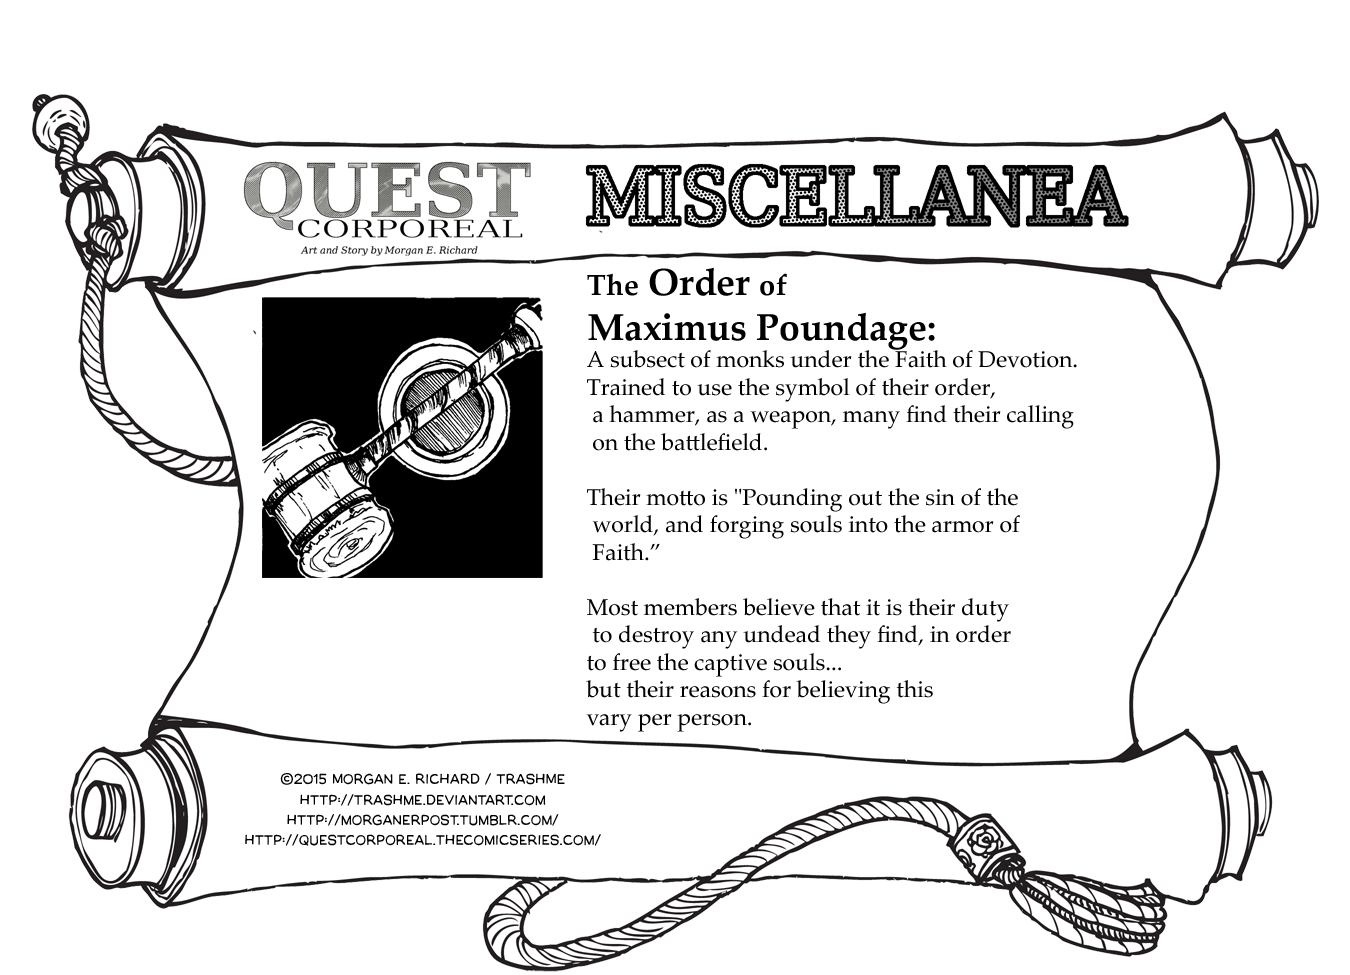 Miscellanea Corporeal: The Order of Maximus Poundage